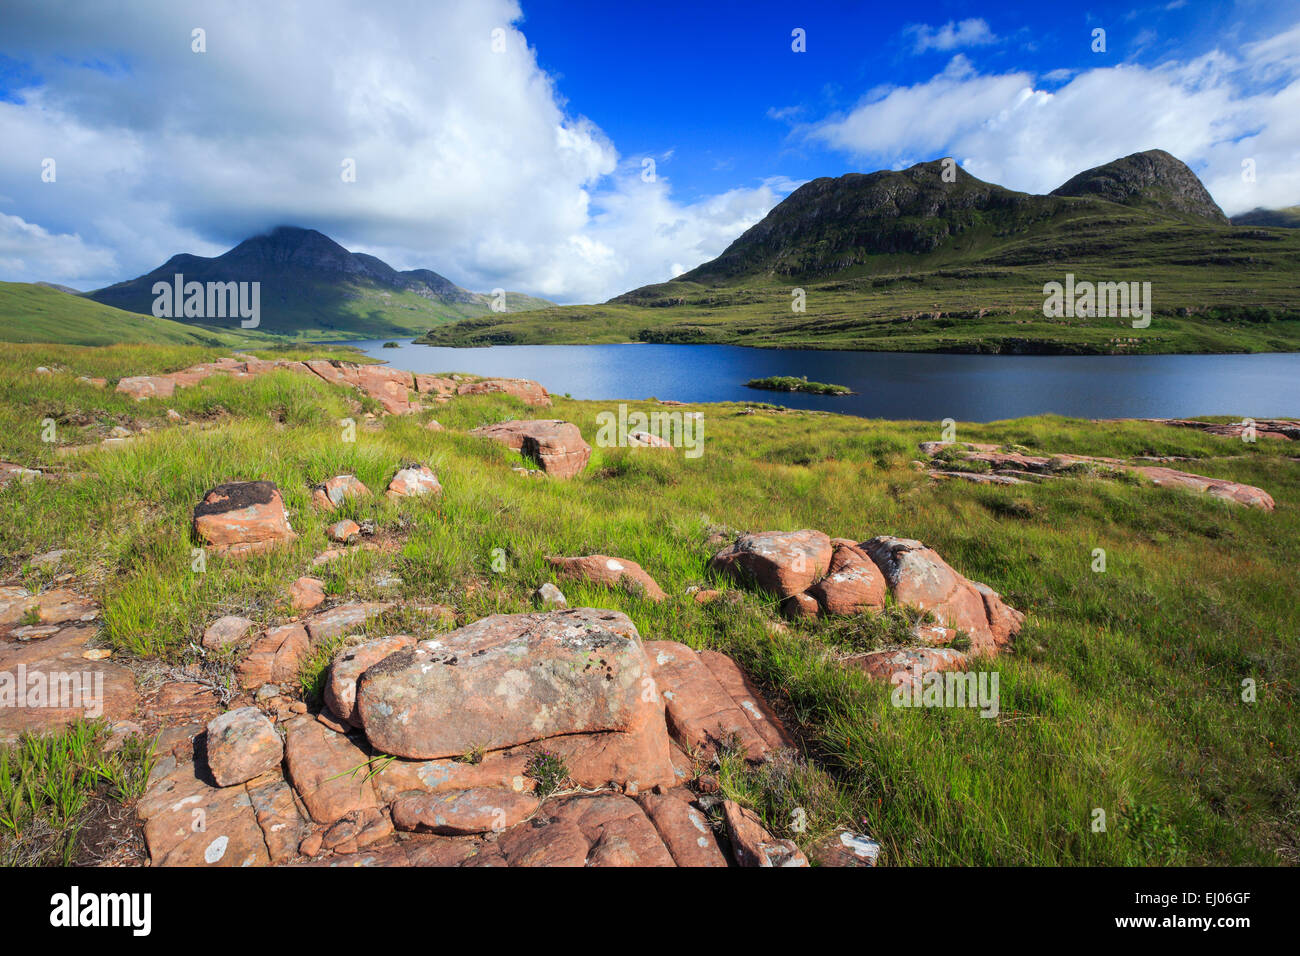 View, mountain, mountains, mountains, water, summits, peaks, Great Britain, Highland, highlands, sky, highland, Stock Photo